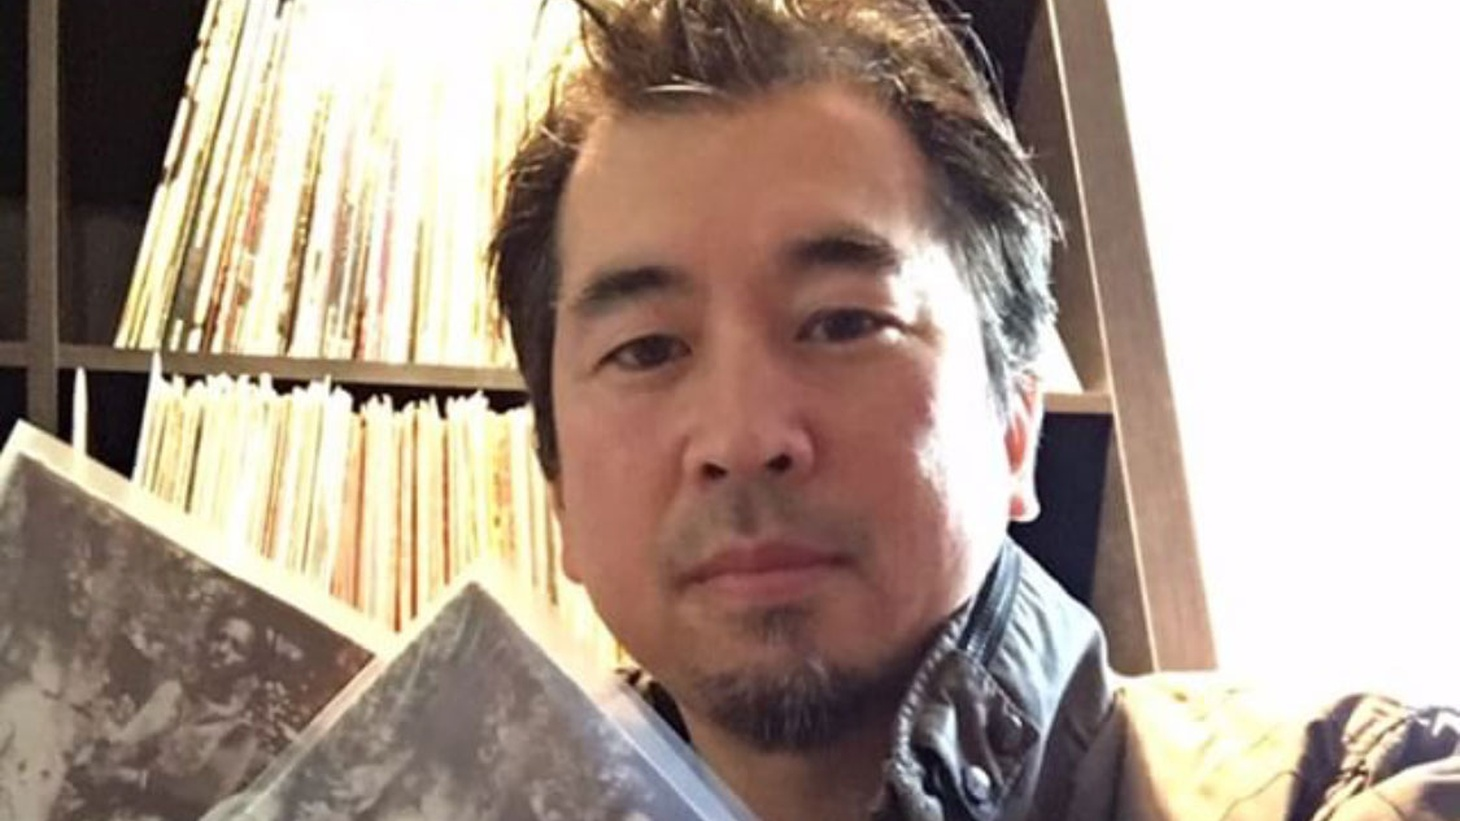 Mathieu hosts renowned record connoisseur Aki Abe for an hour long mix of Brazilian gems.